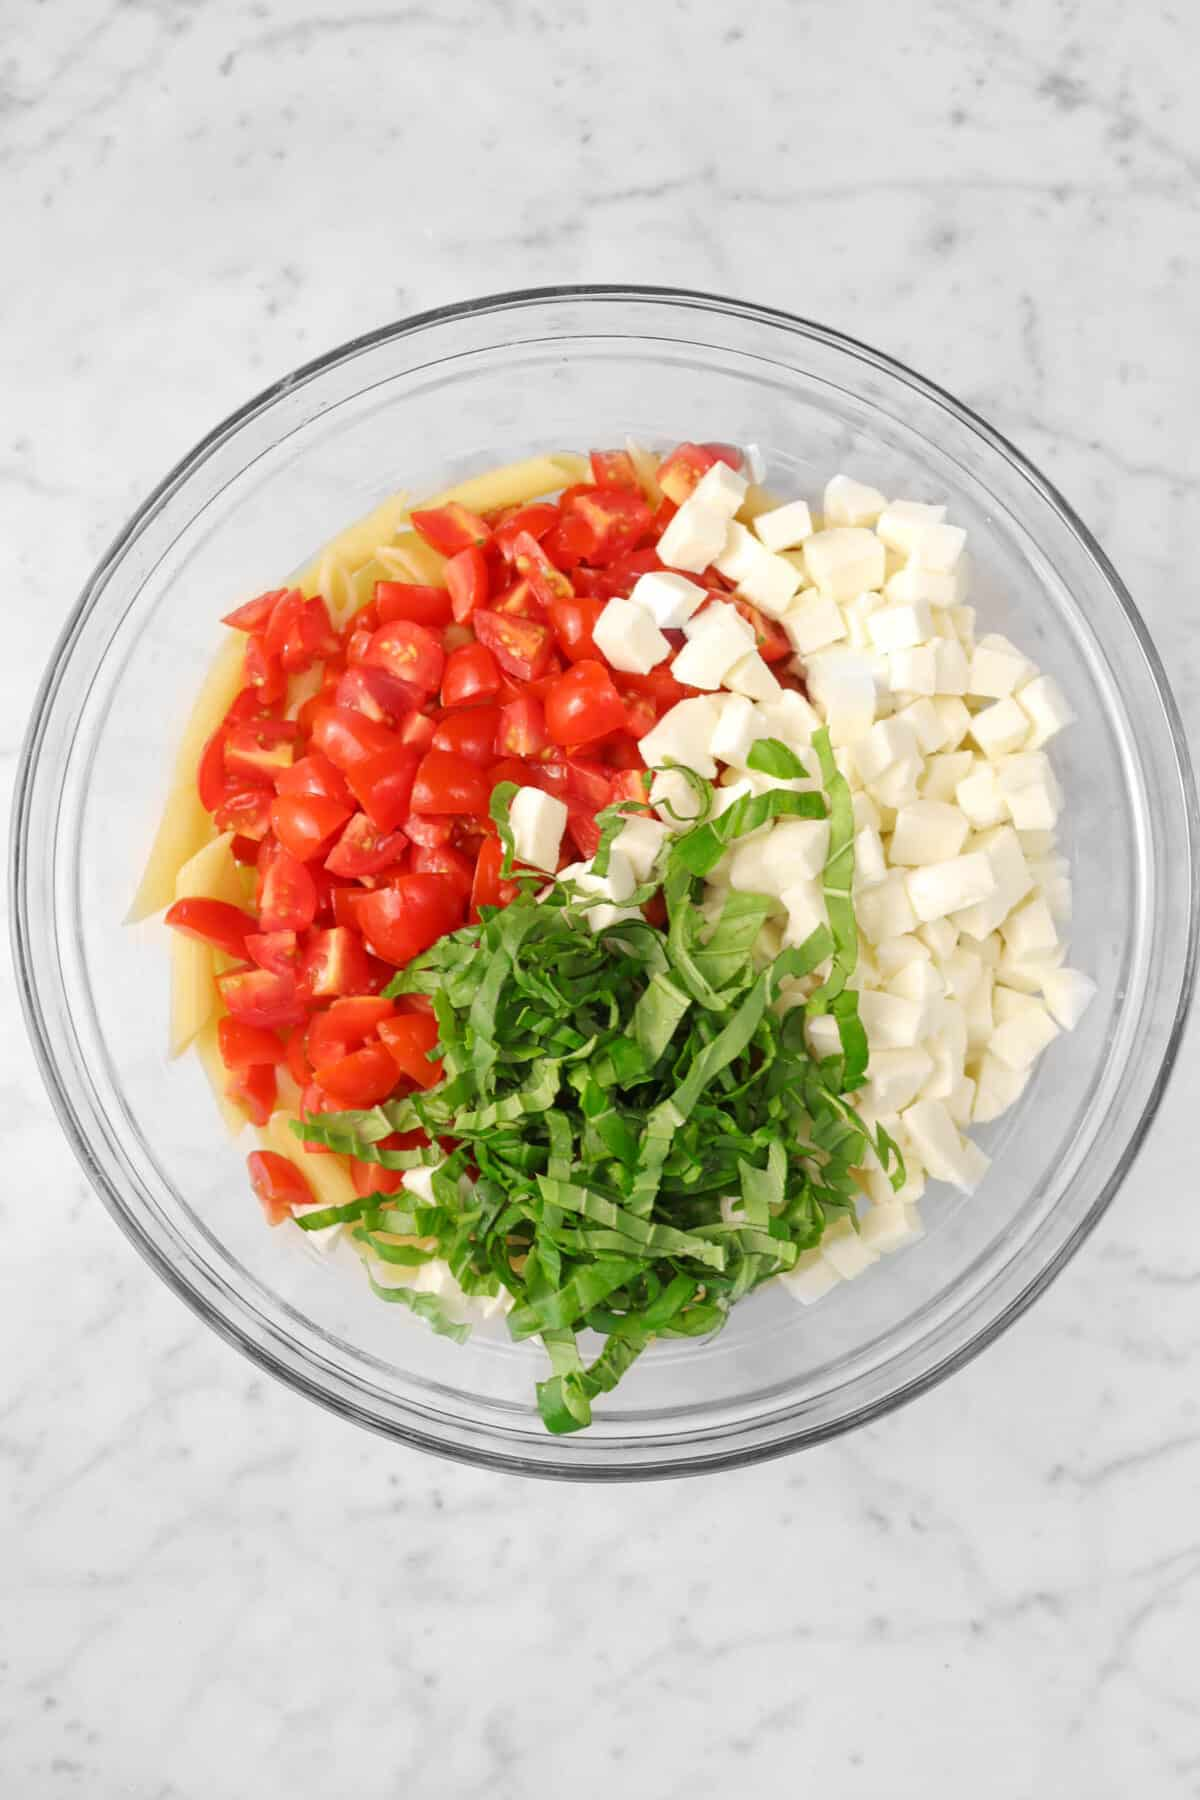 penne pasta, chopped tomatoes, chopped mozzarella cheese, and chopped basil in a large glass bowl